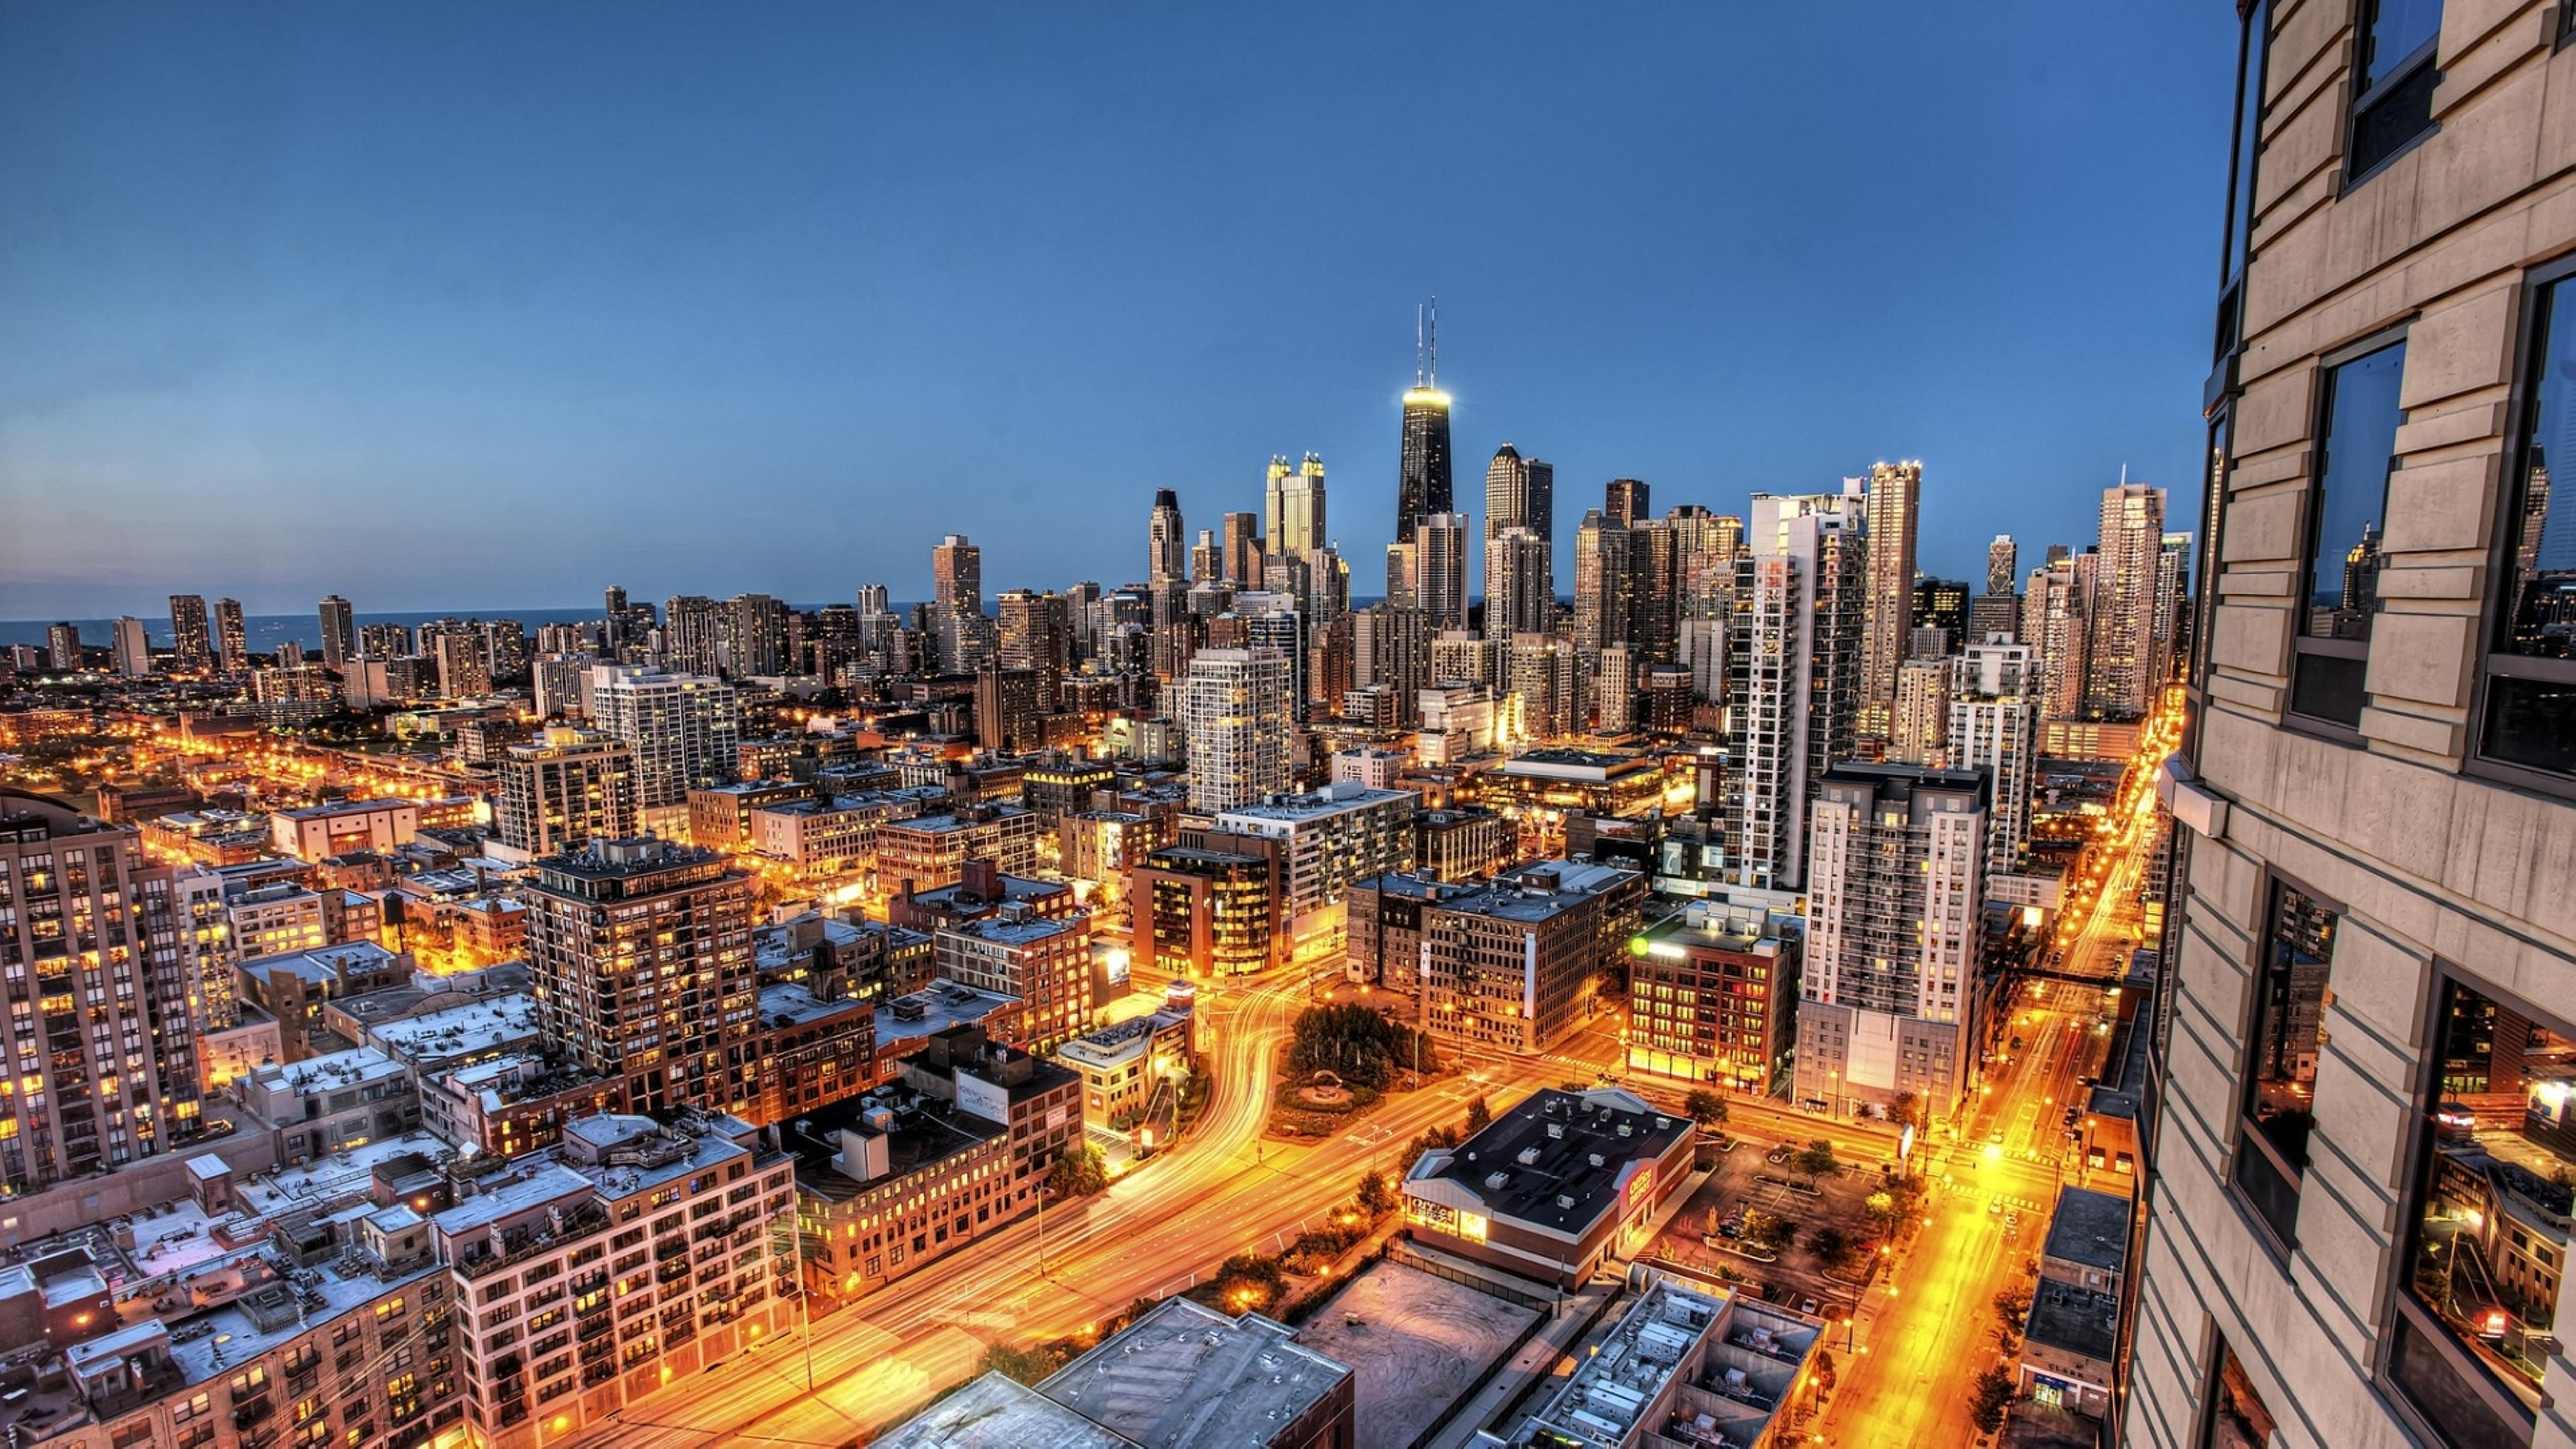 Good Wallpaper Night Chicago - chicago-city-lighted-roads-in-night-5120x2880  Graphic.jpg